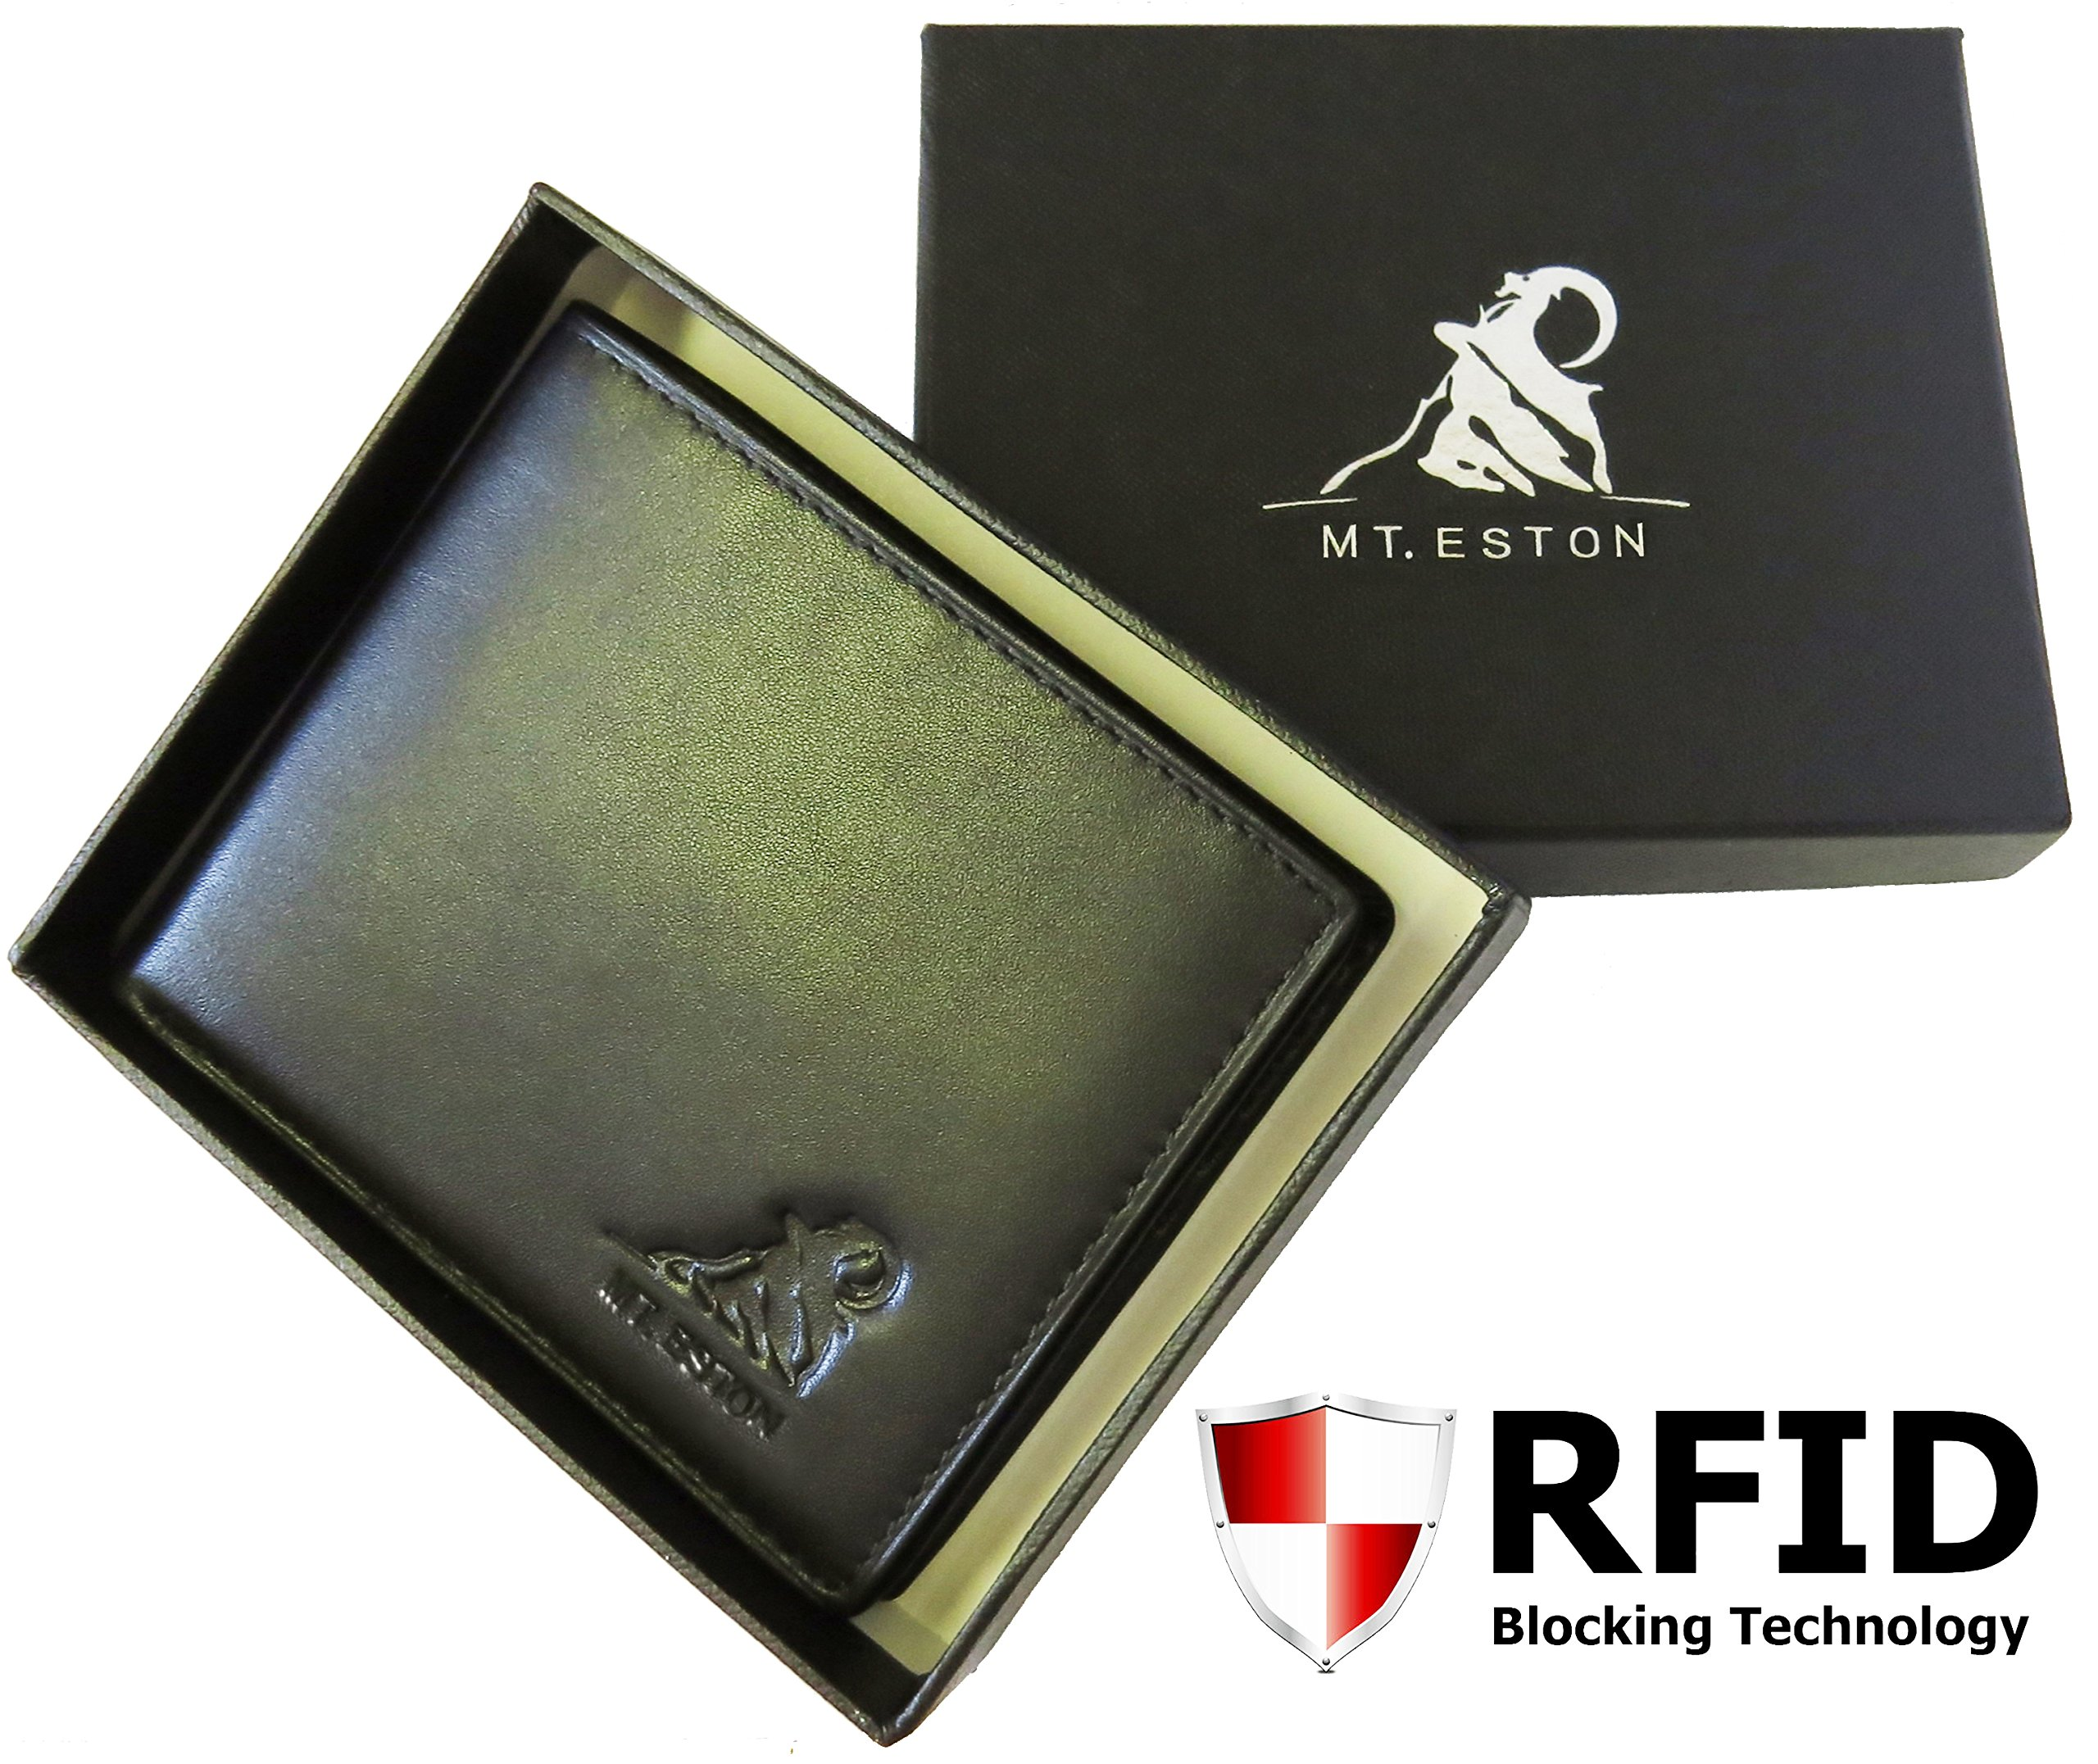 Mt. Eston RFID Blocking Trifold Bifold Mens Leather Wallet, 18 Pocket Extra Capacity, High-End Build, Gift Box for Men (Previously Mt. Everest) by Mt. Everest (Image #2)